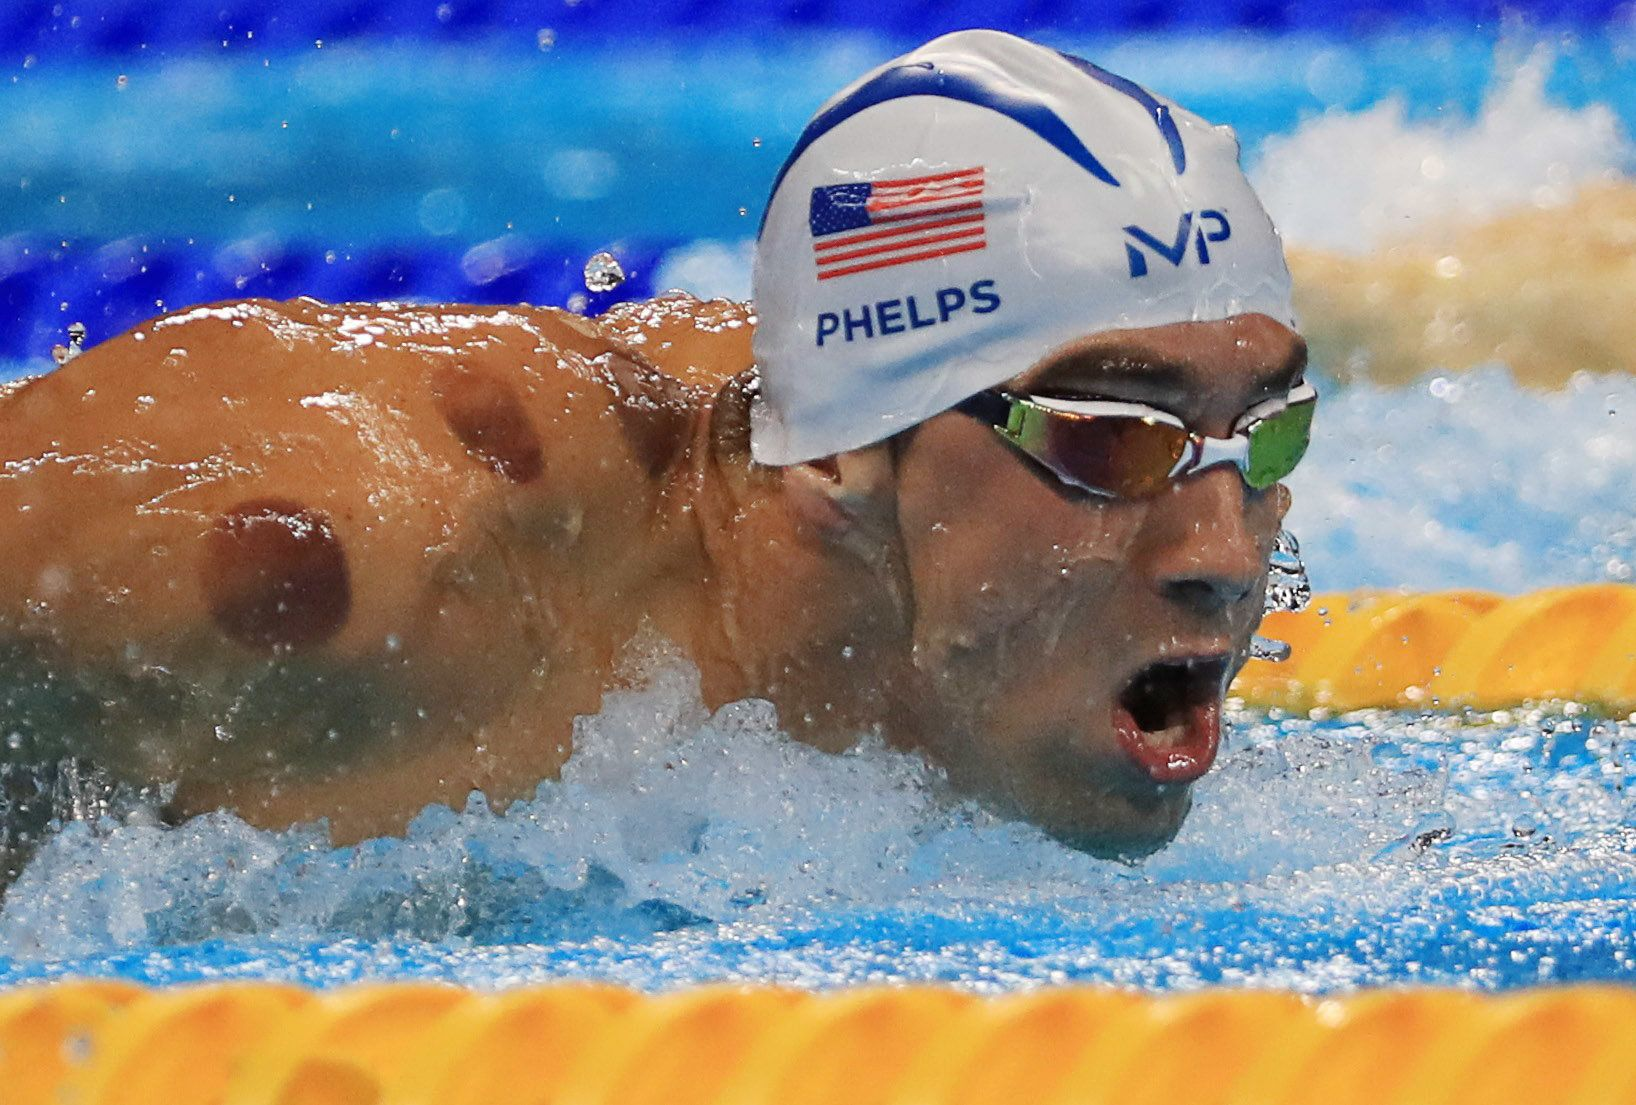 Michael Phelps competes at the Rio Olympics with circular bruises from cupping on his shoulders...